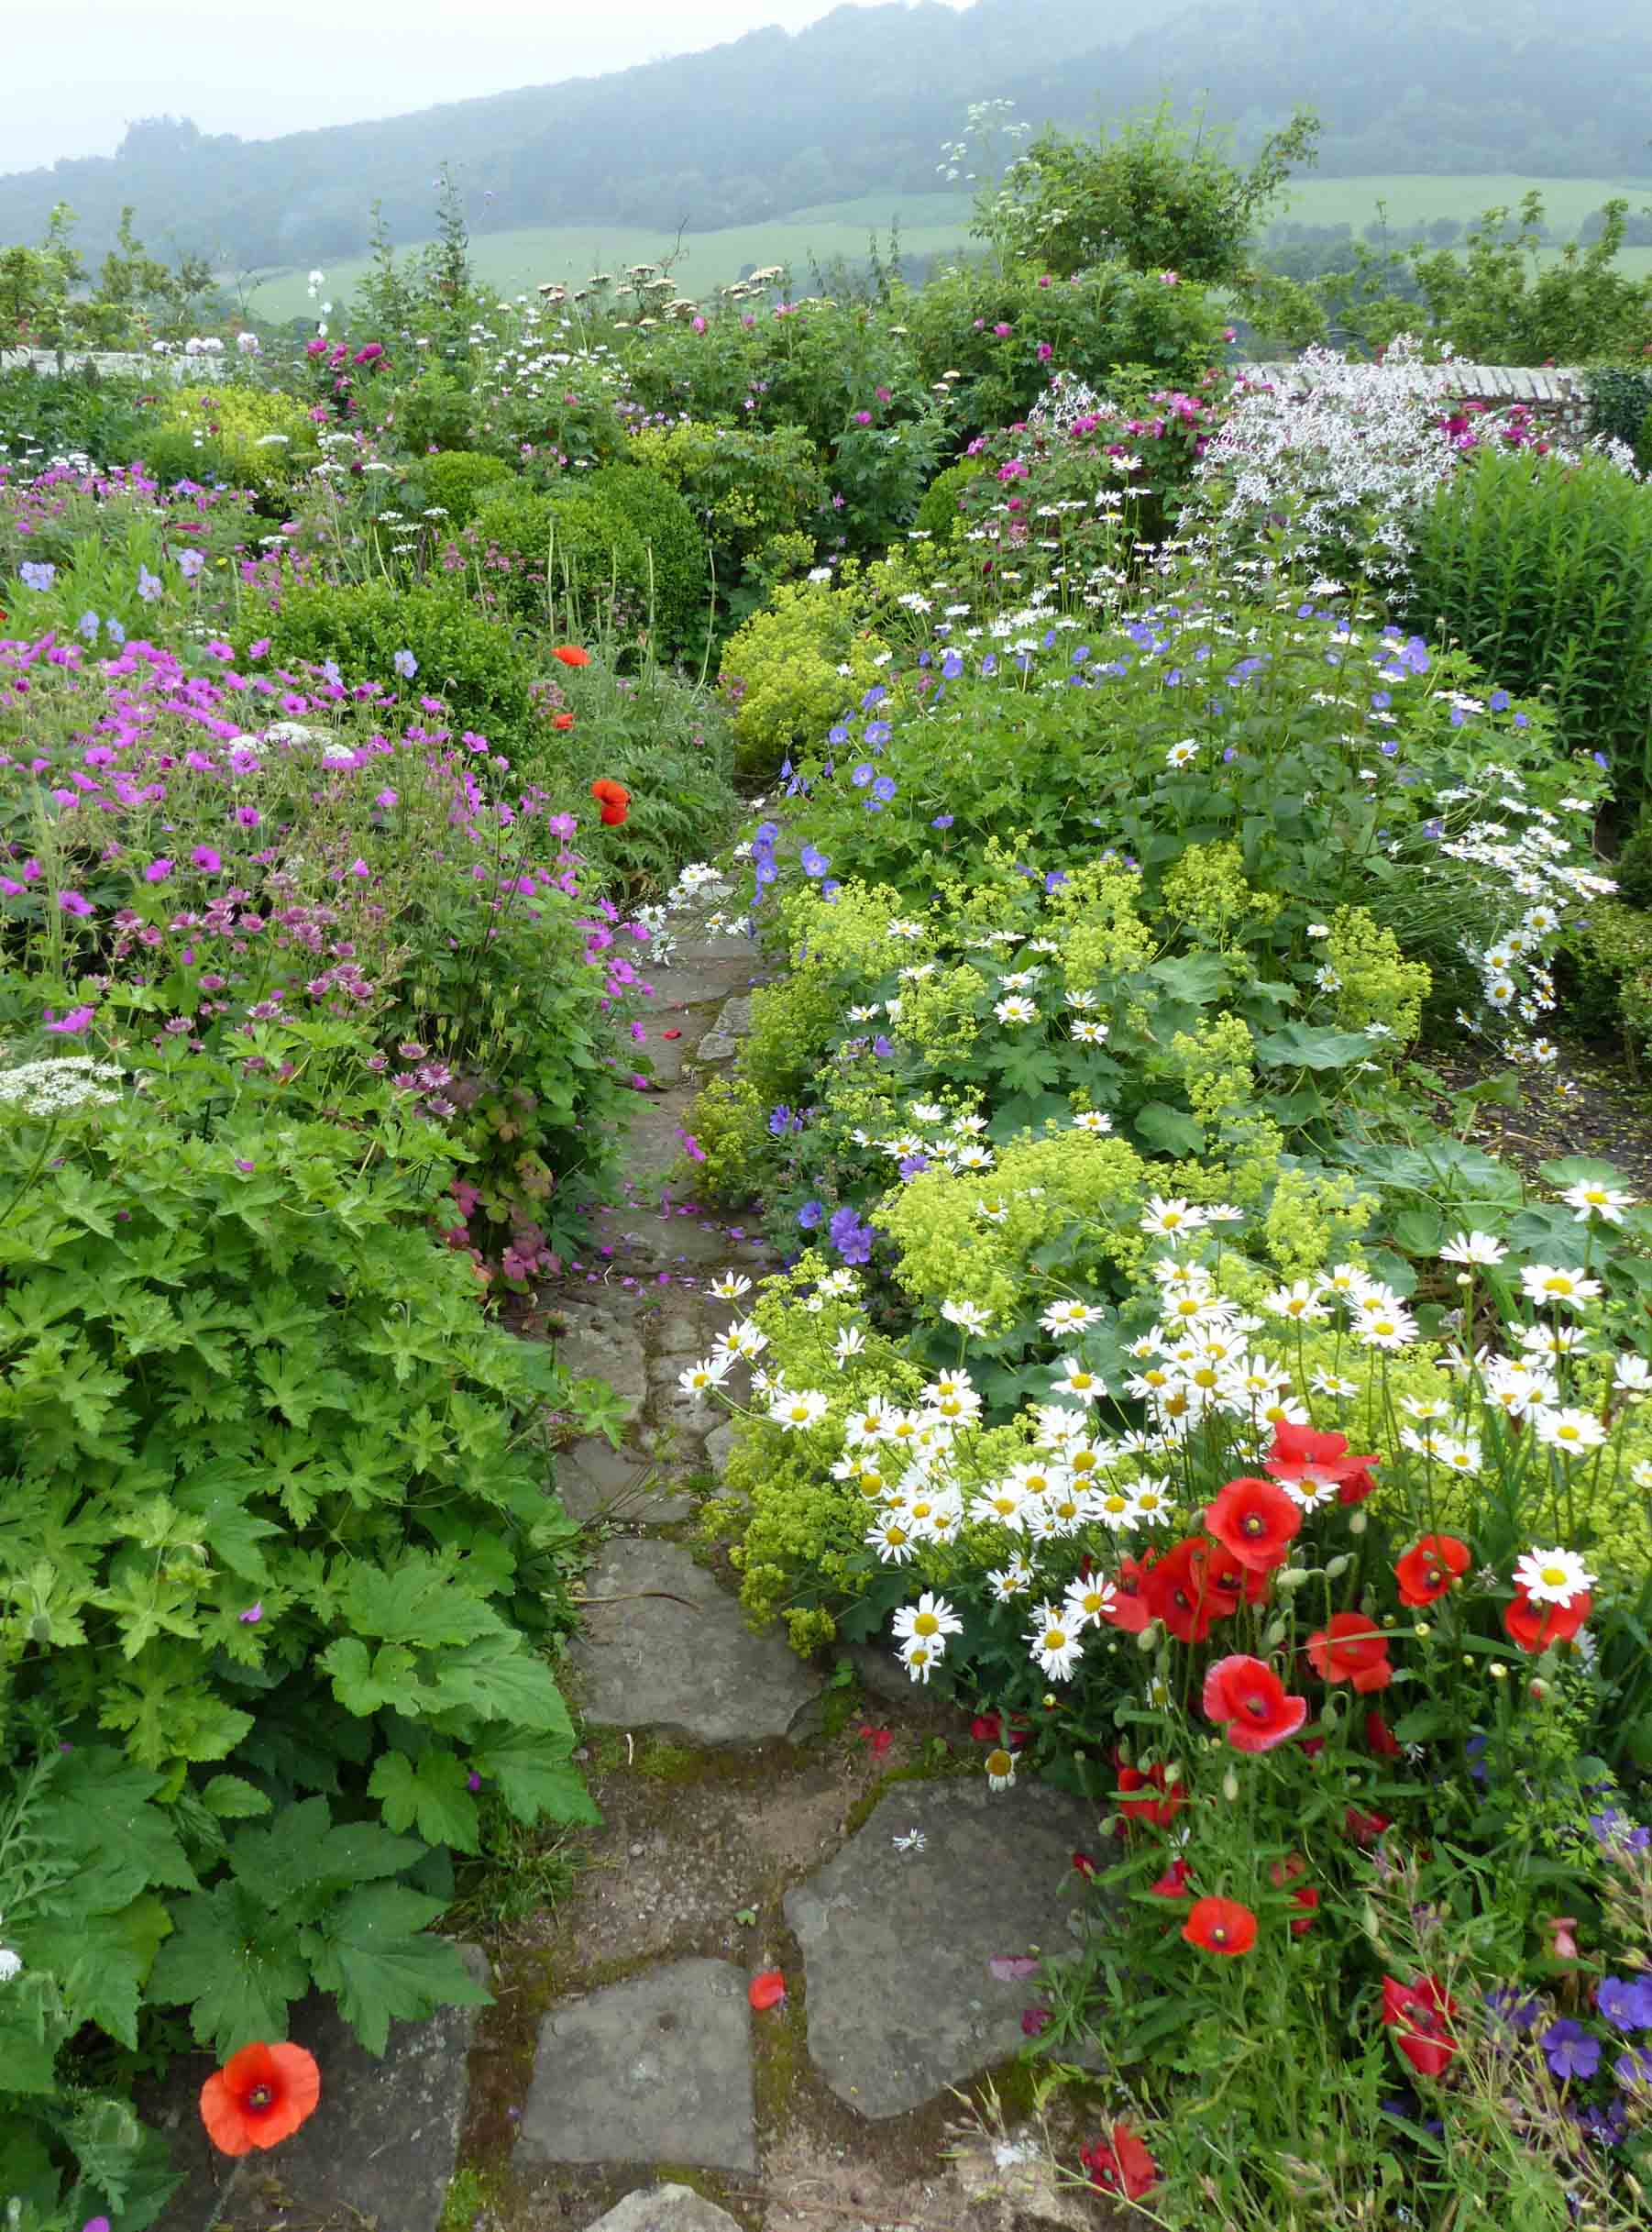 Stone path between flowers and shrubs